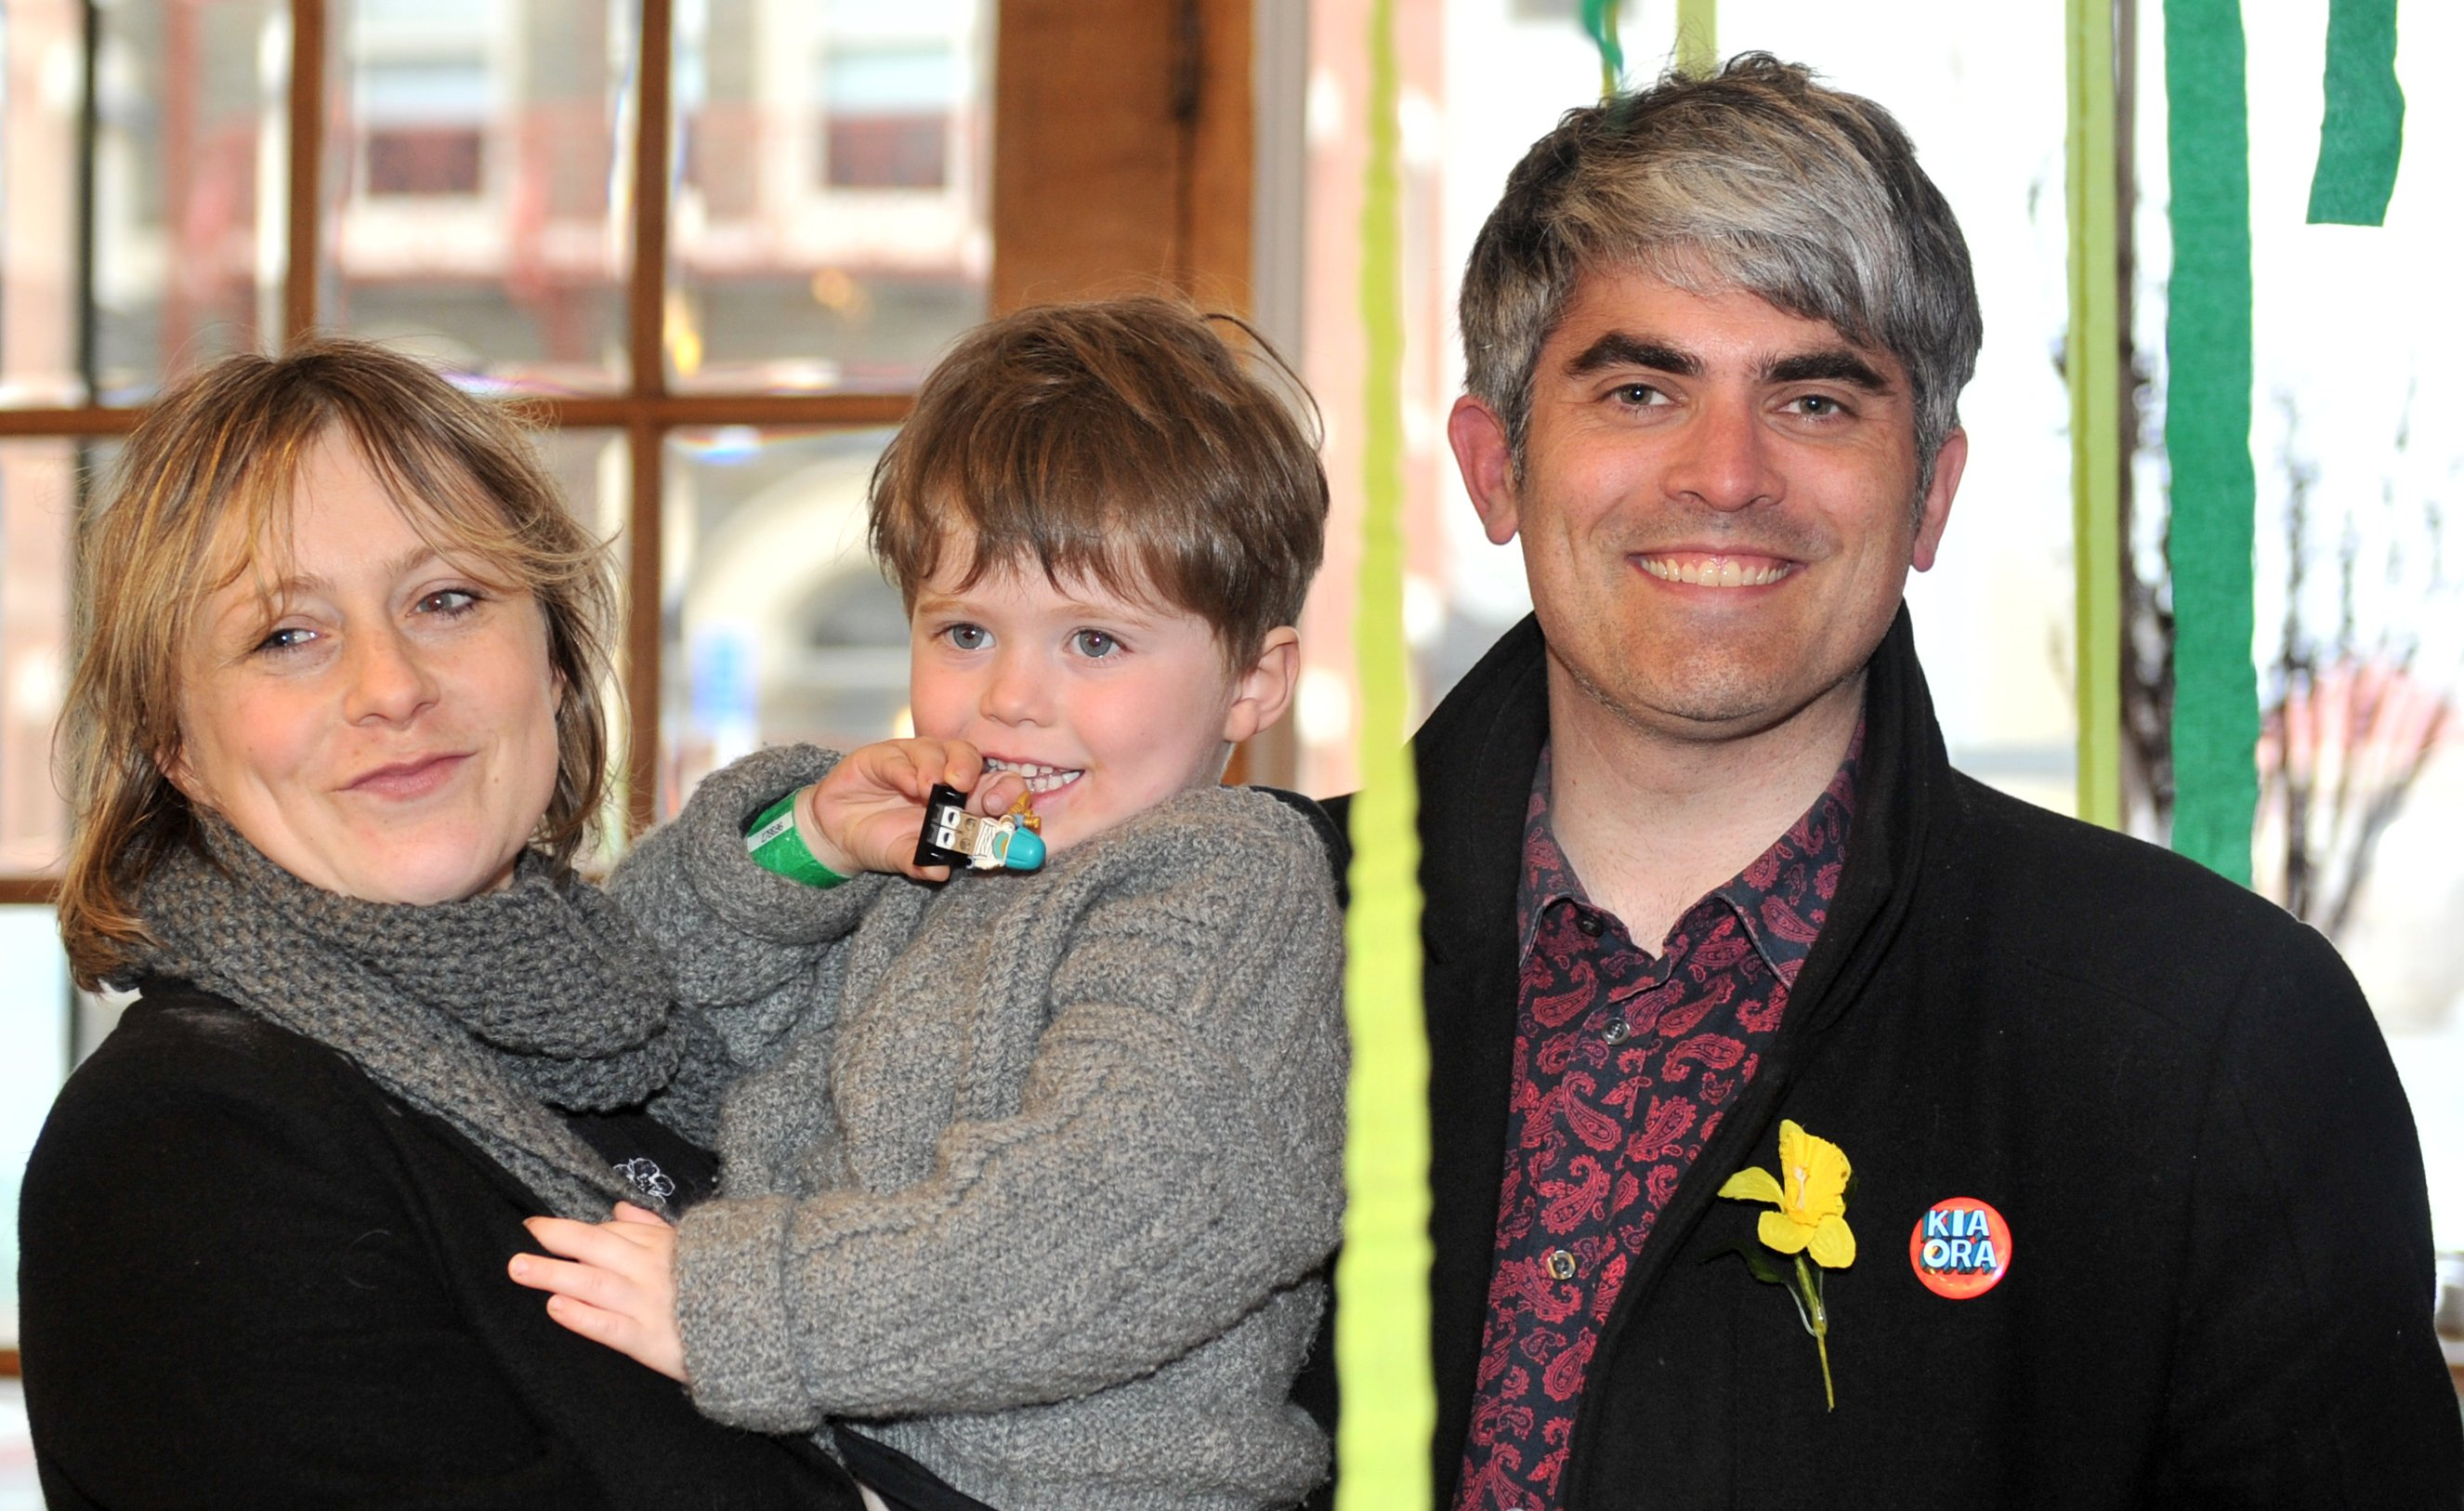 The new mayor celebrates with his wife Anya Sinclair and son Emile Hawkins (3). PHOTO: CHRISTINE...